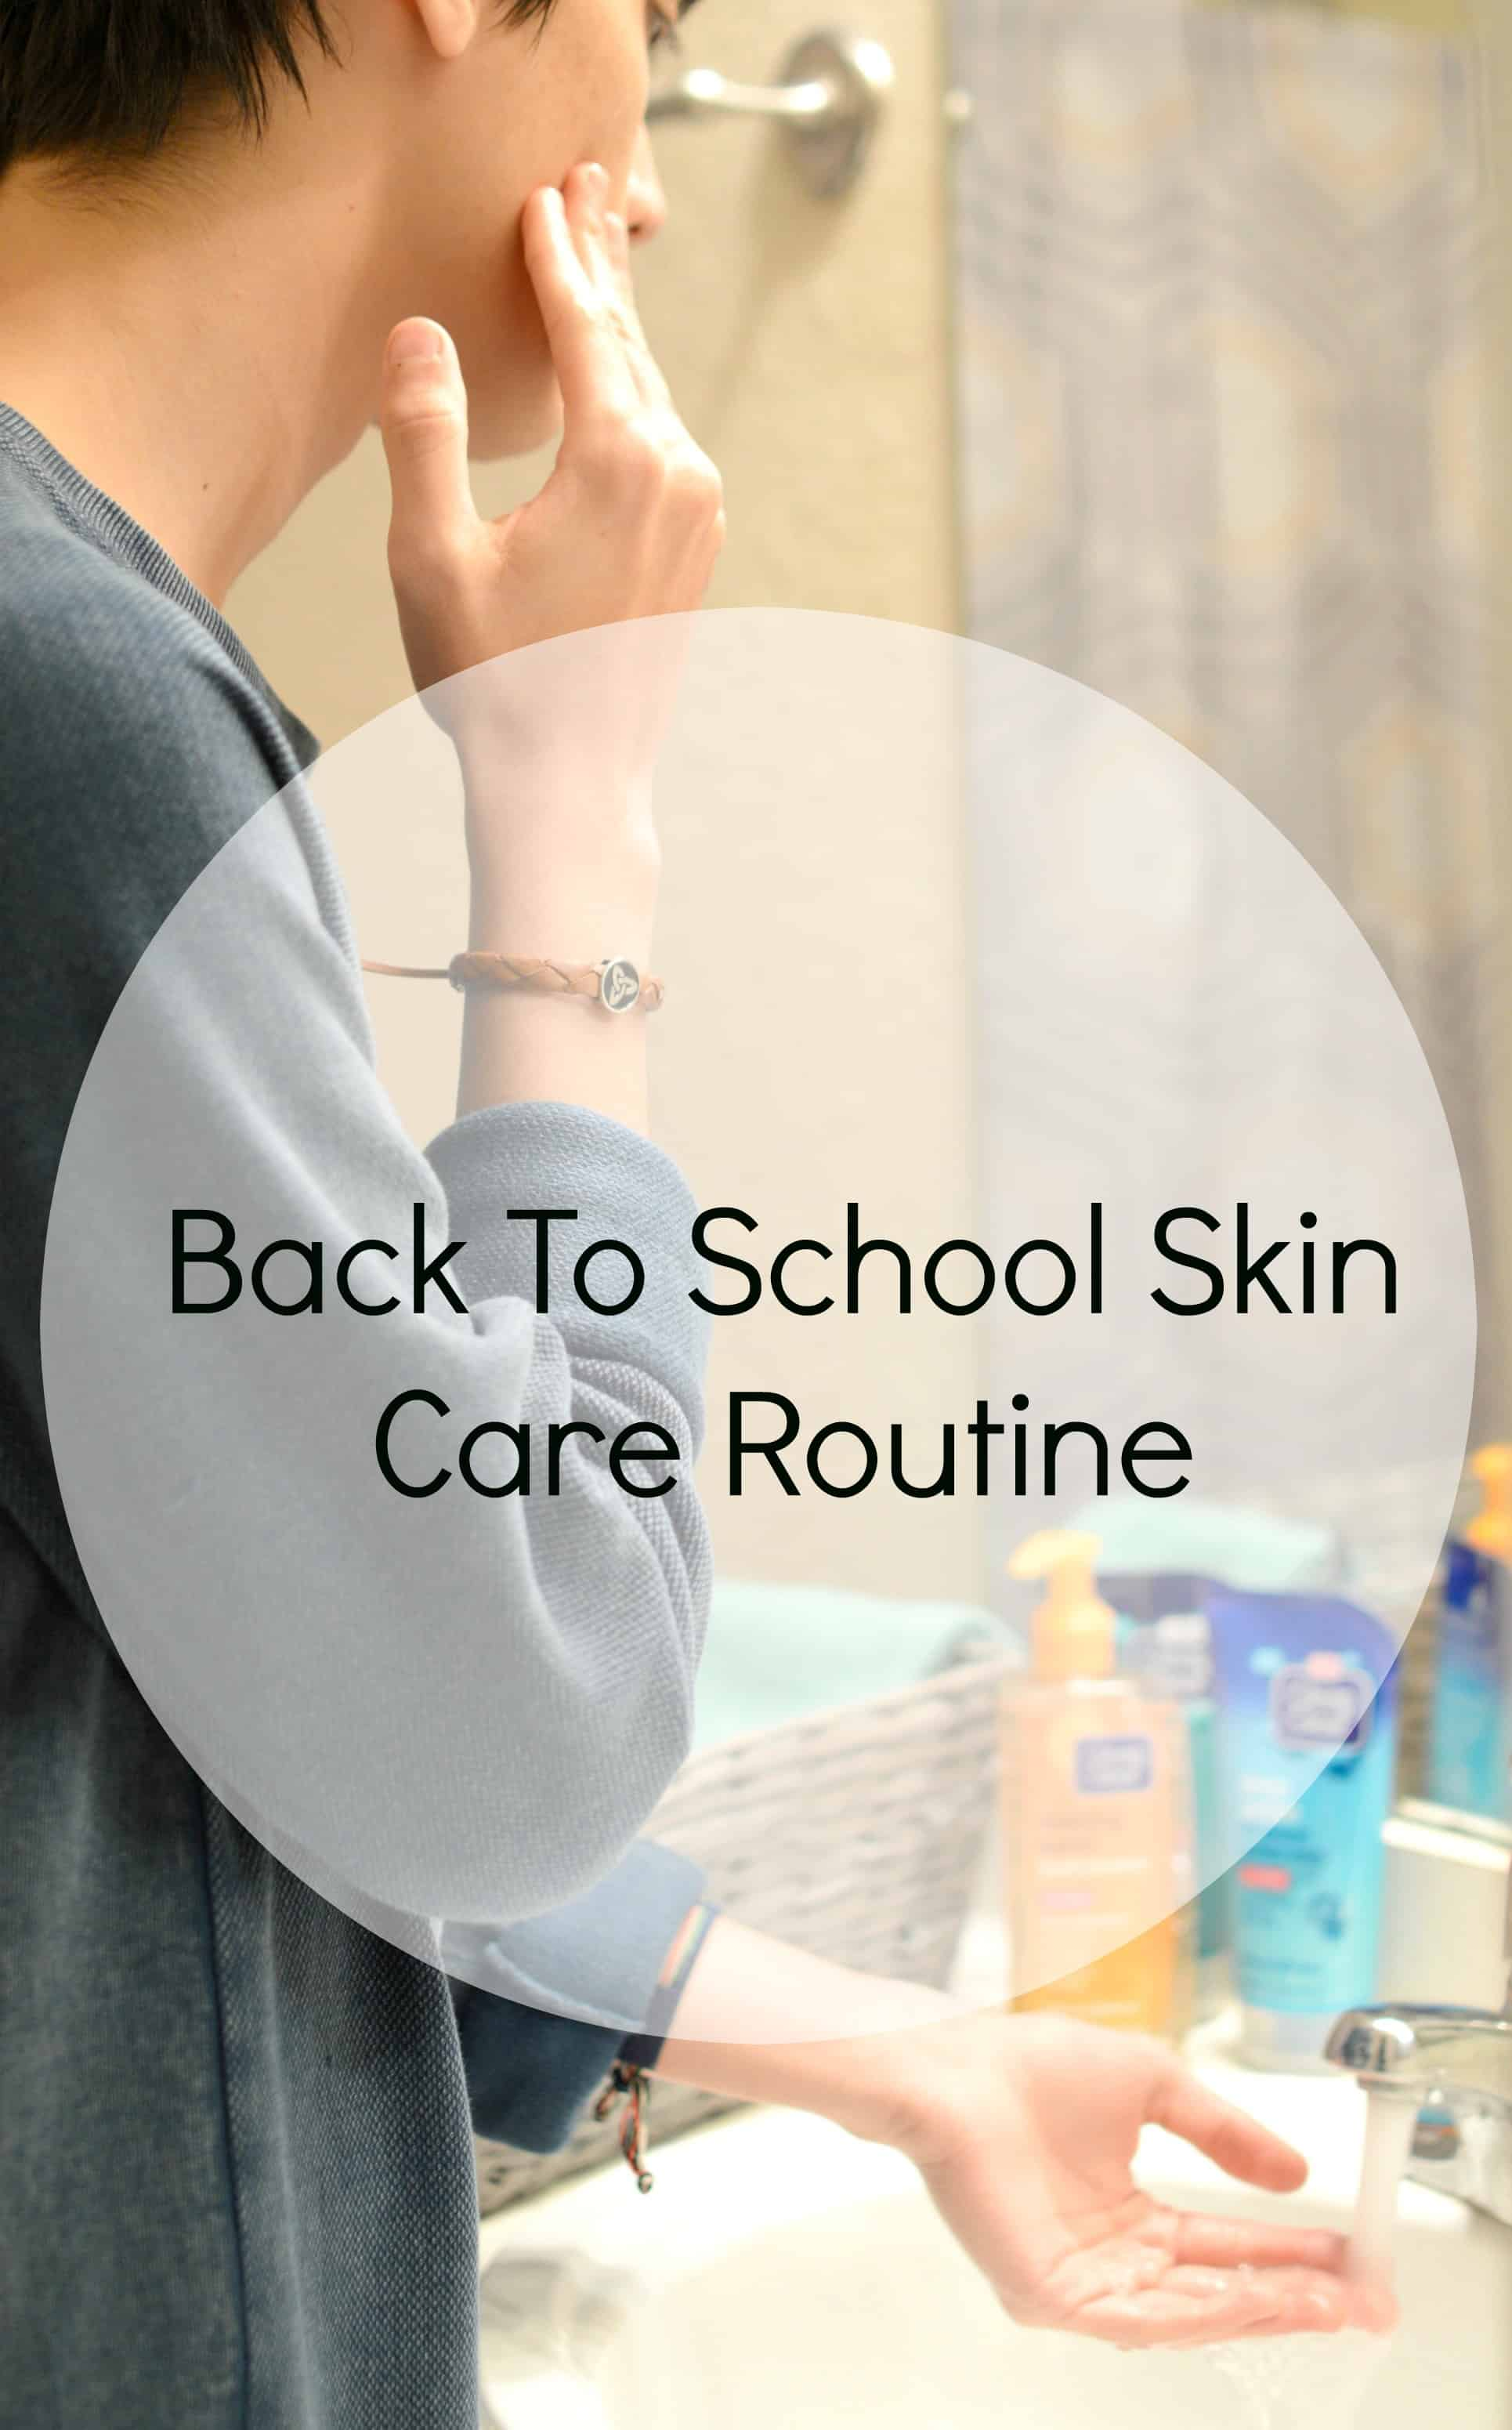 Back To School Skin Care Routine